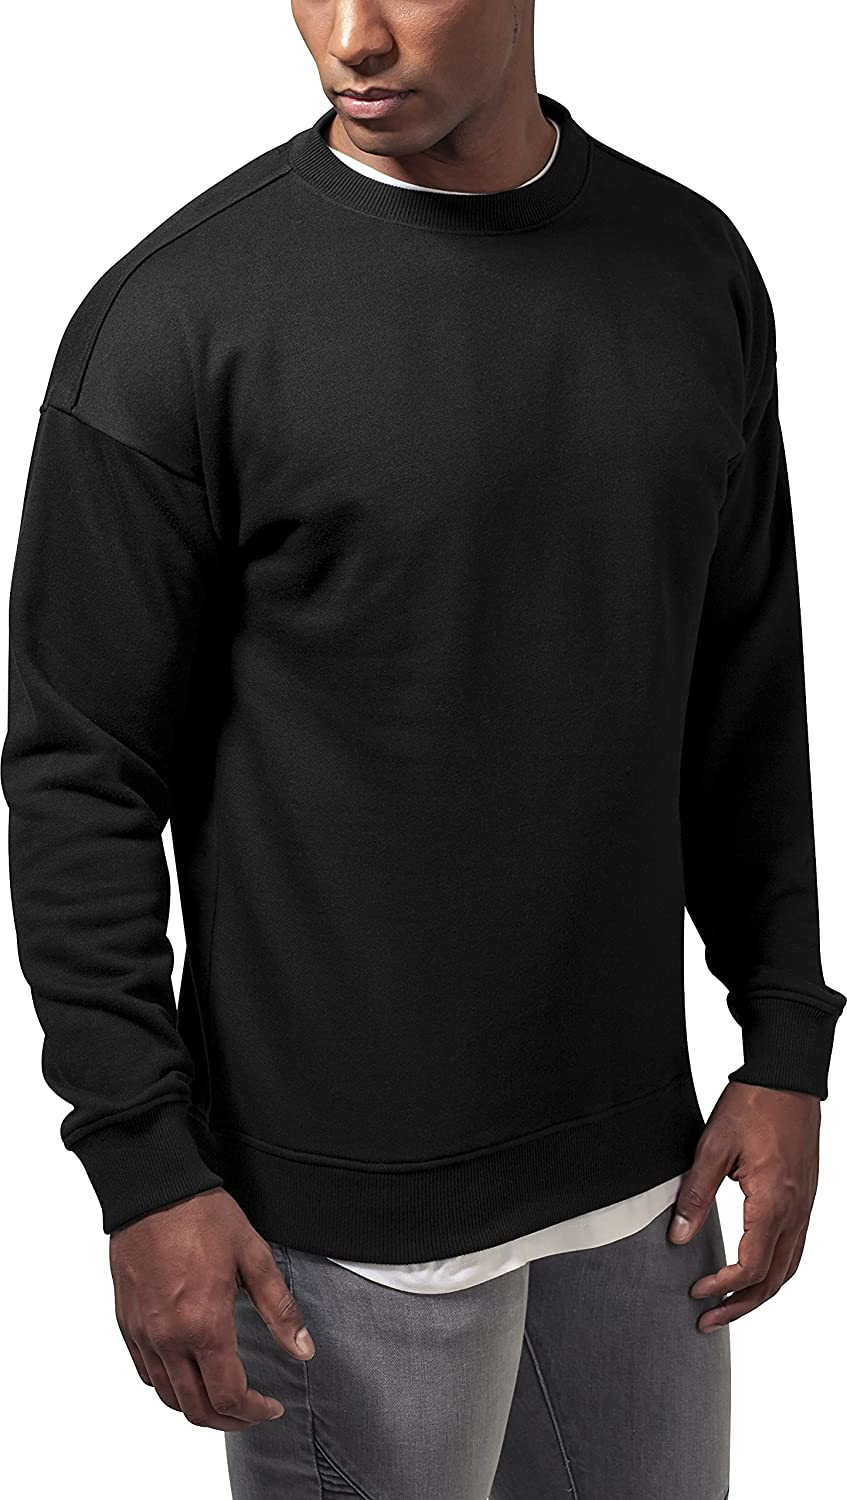 Urban Classics - Basic Crewneck Max 44% OFF All items in the store Sweat Pullover